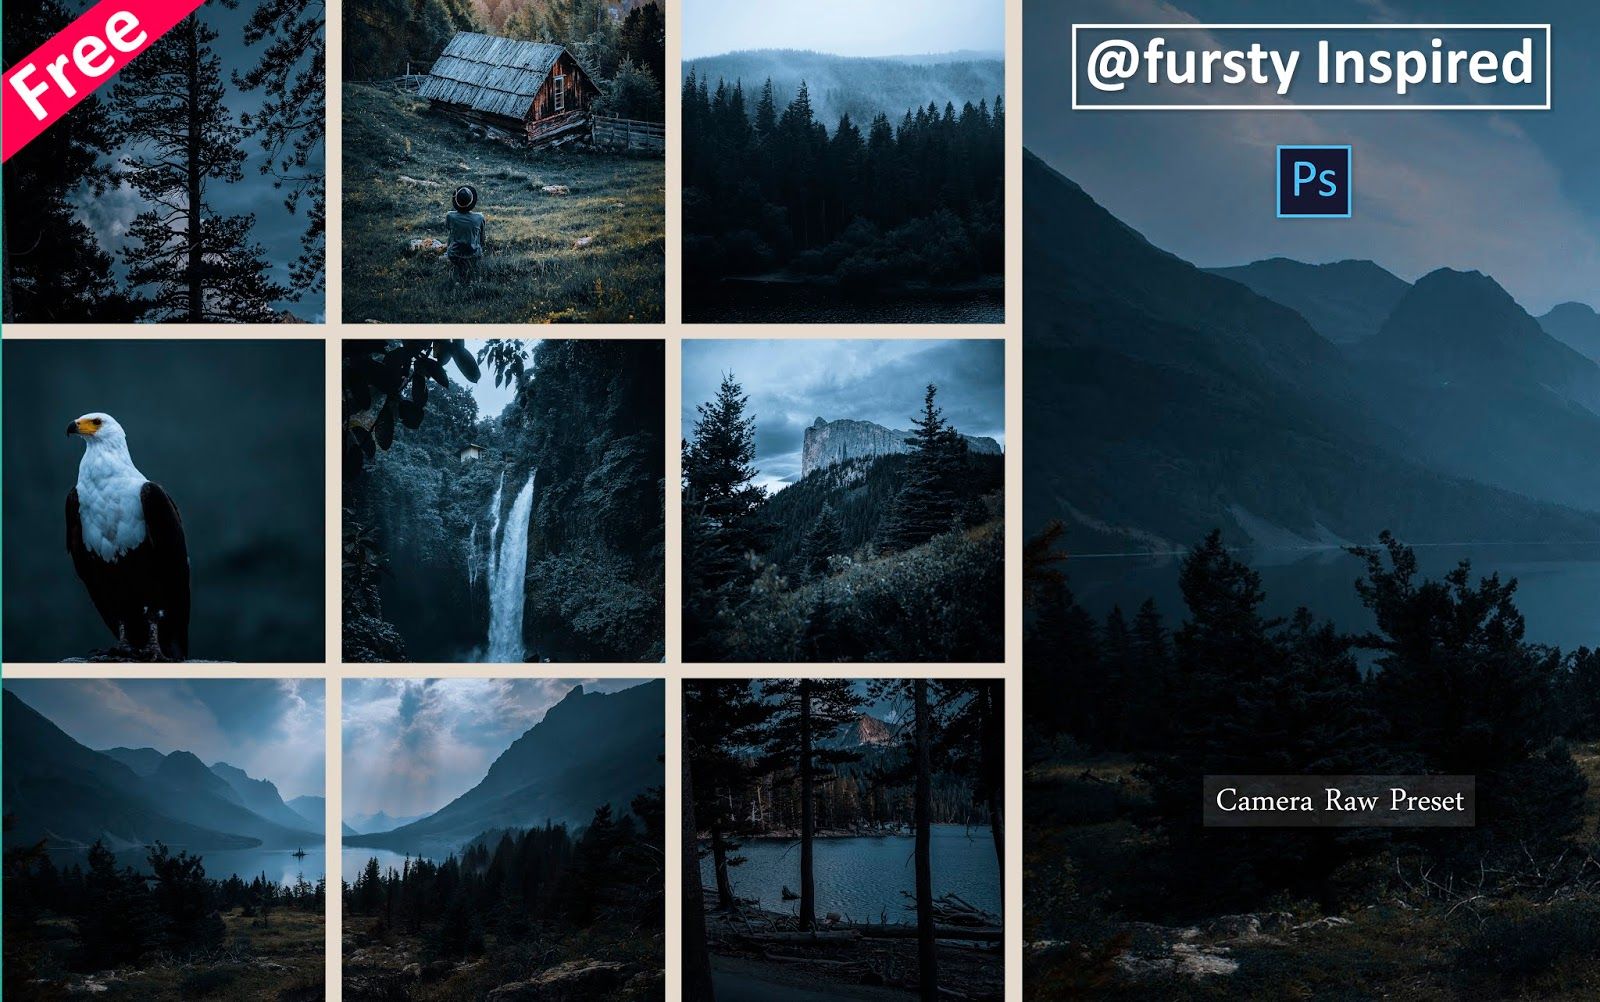 Download Fursty Inspired Camera Raw Preset for Free   How to Edit Photos Like Fursty in Photoshop